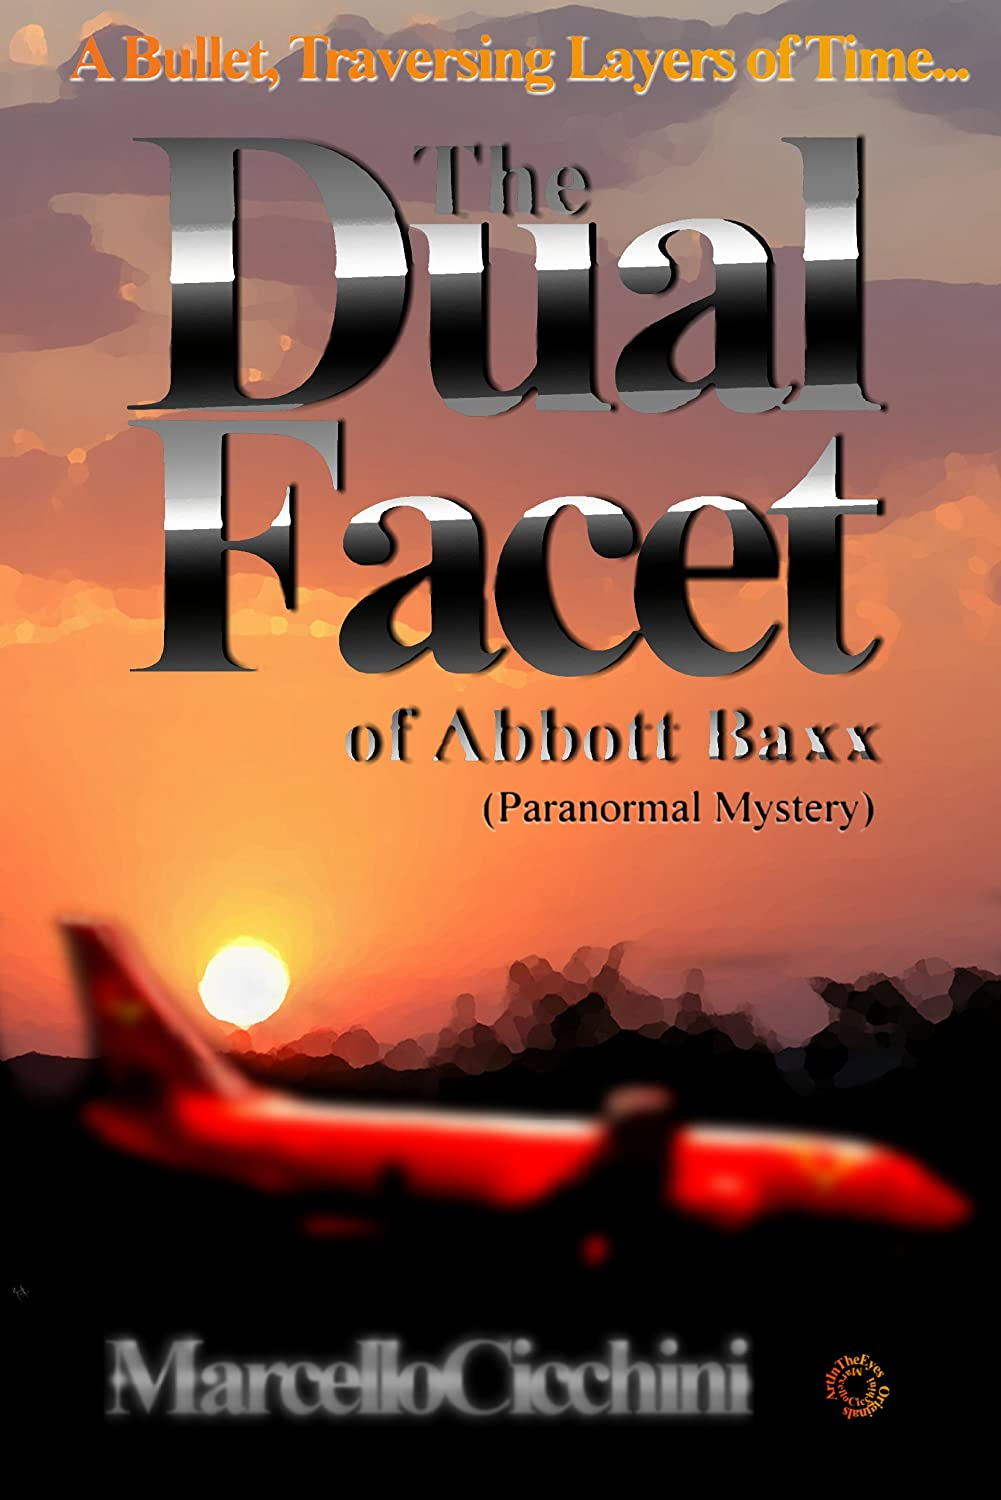 The Dual Facet of Abbott Baxx by Marcello Cicchini